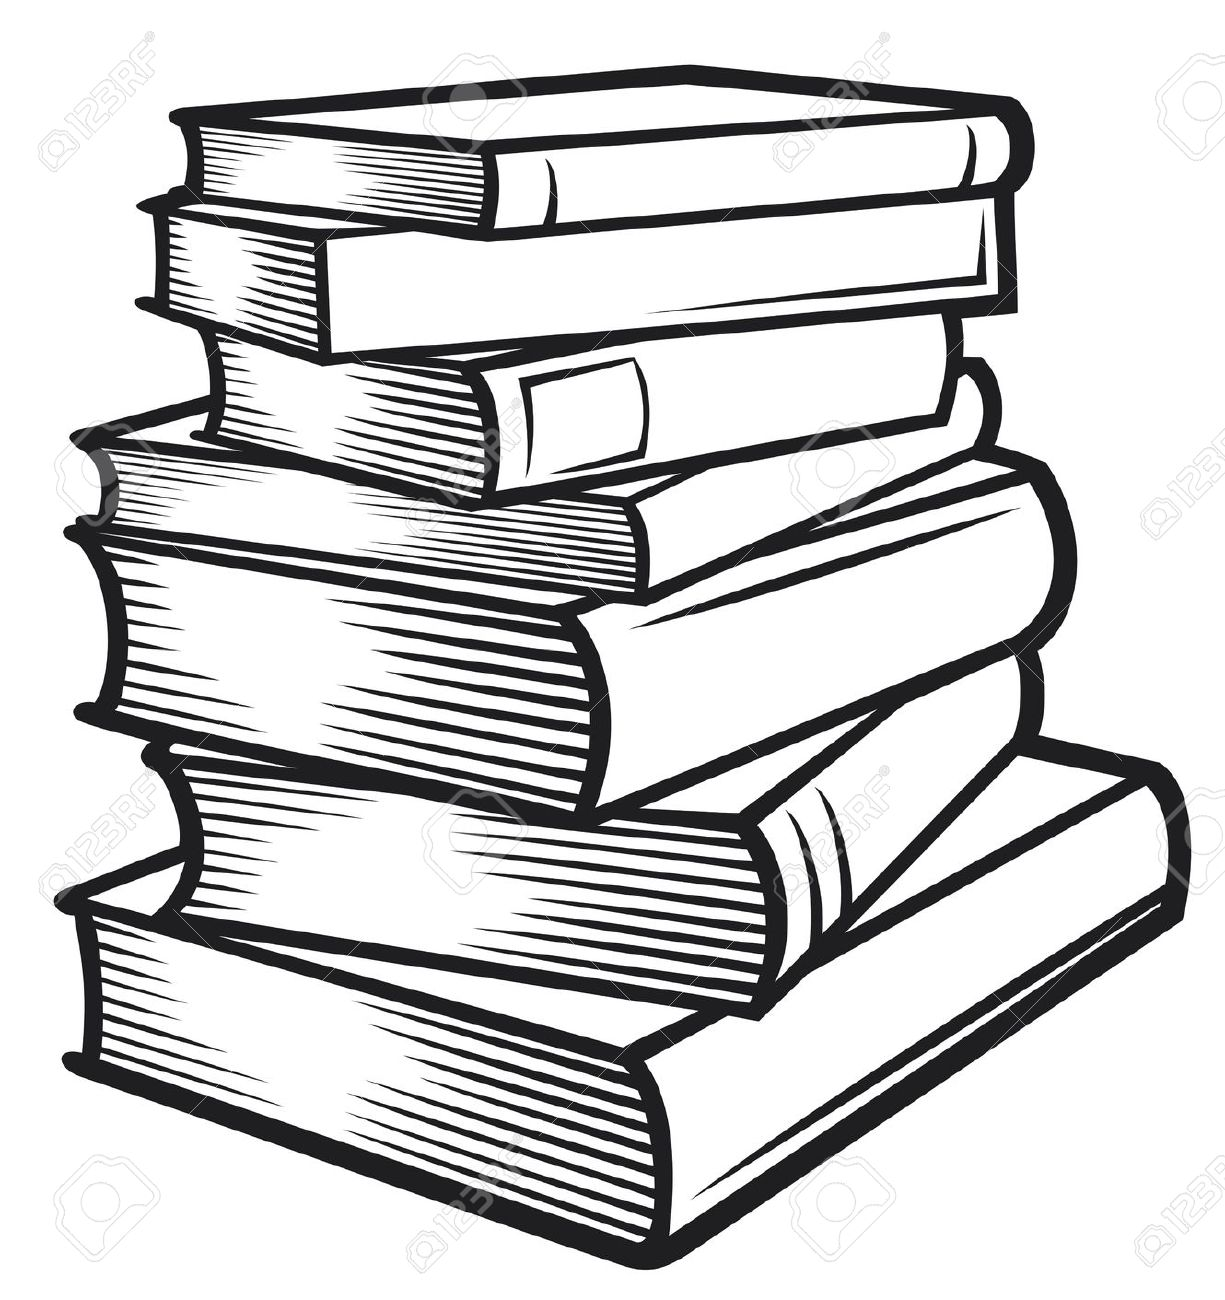 Books Clipart Black And White